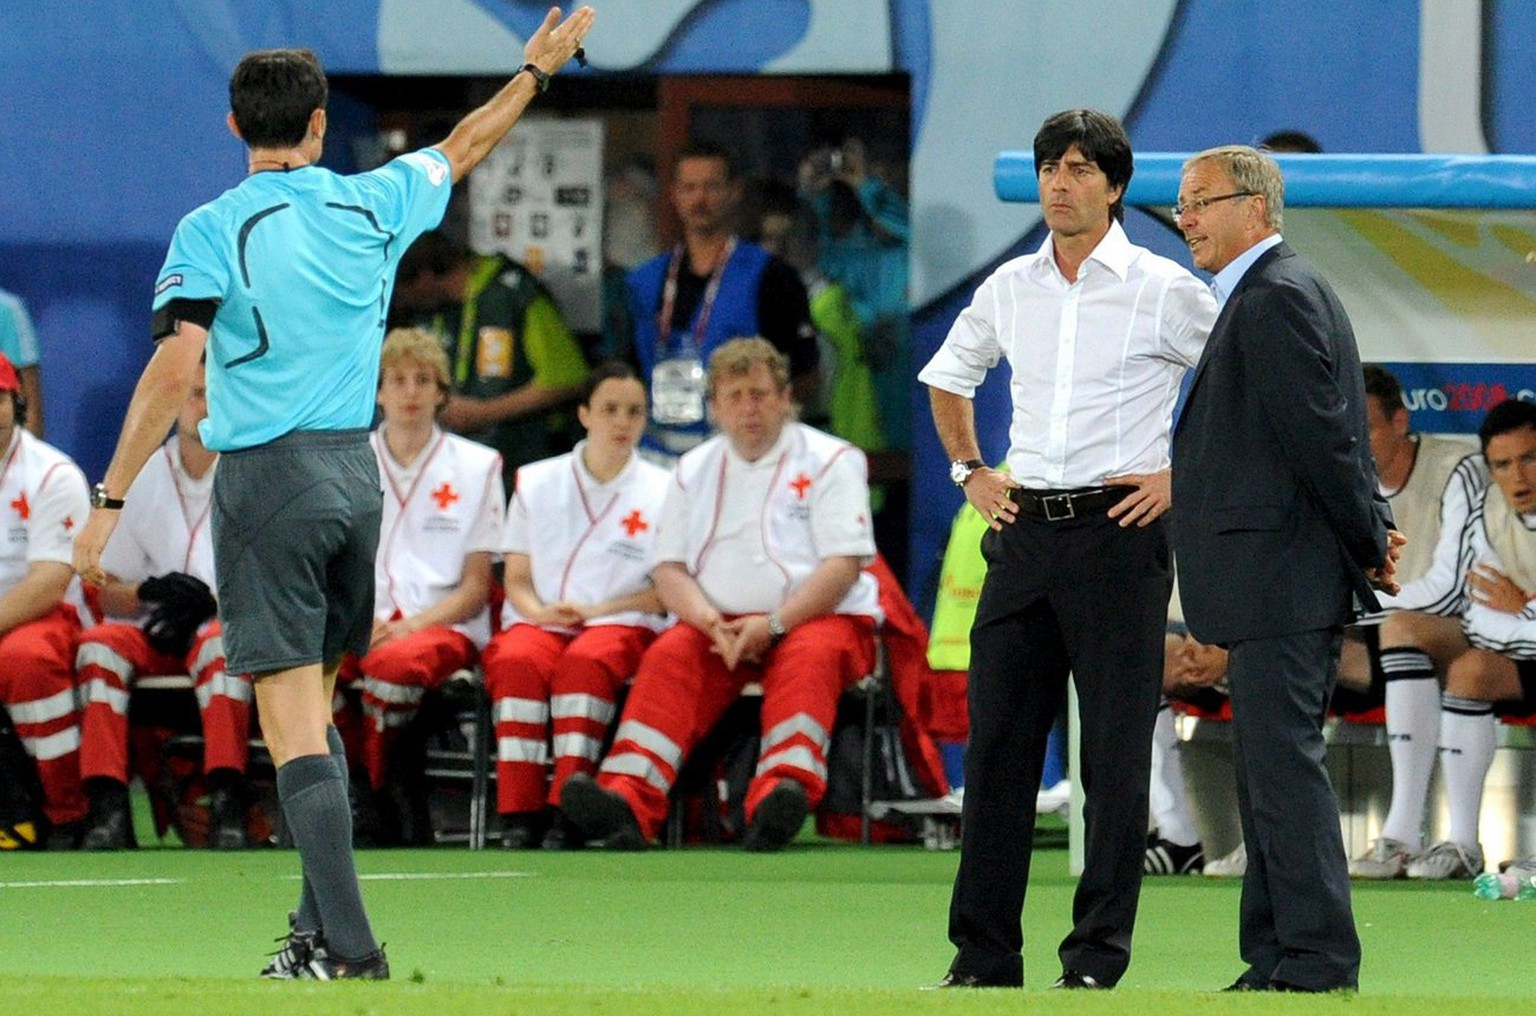 epa01385124 Referee Manuel Mejuto Gonzales (L) of Spain gestures towards Austrian coach Josef Hickersberger (R) and German coach Joachim Loew during the UEFA EURO 2008 Group B preliminary round match between Austria and Germany at the Ernst Happel stadium in Vienna, Austria, 16 June 2008.  EPA/VASSIL DONEV +please note UEFA restrictions particulary in regard to slide shows and 'No Mobile Phones'+